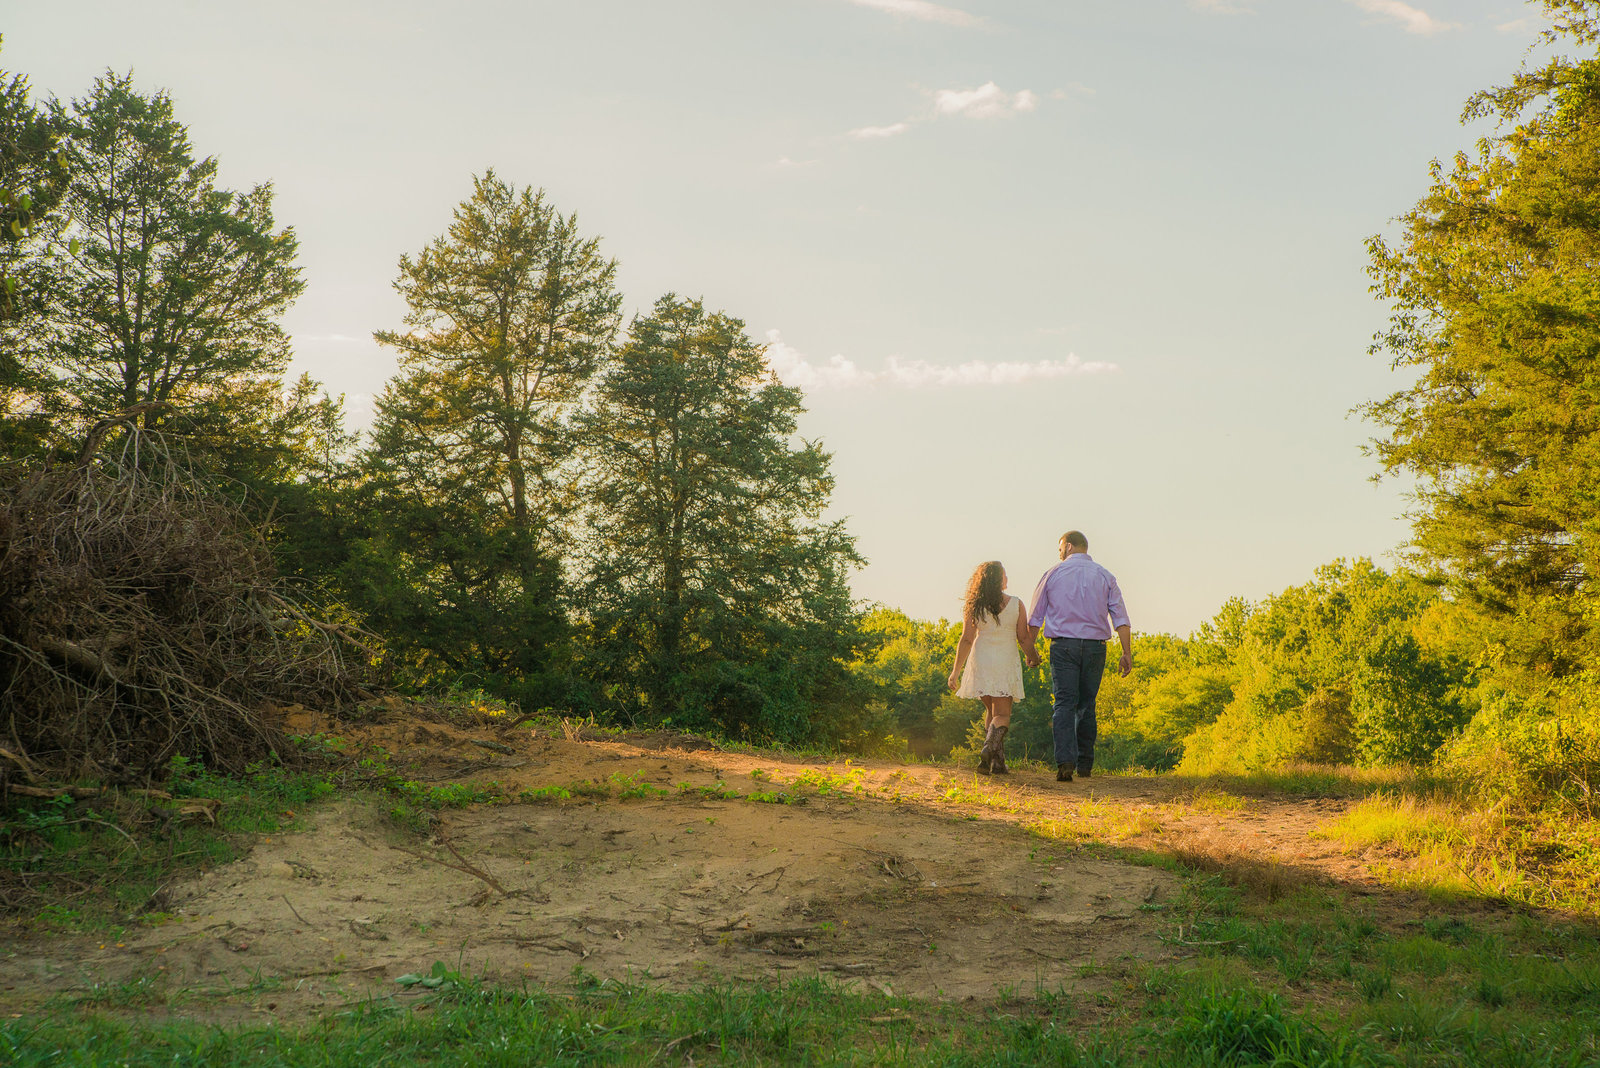 NJ_Rustic_Engagement_Photography043